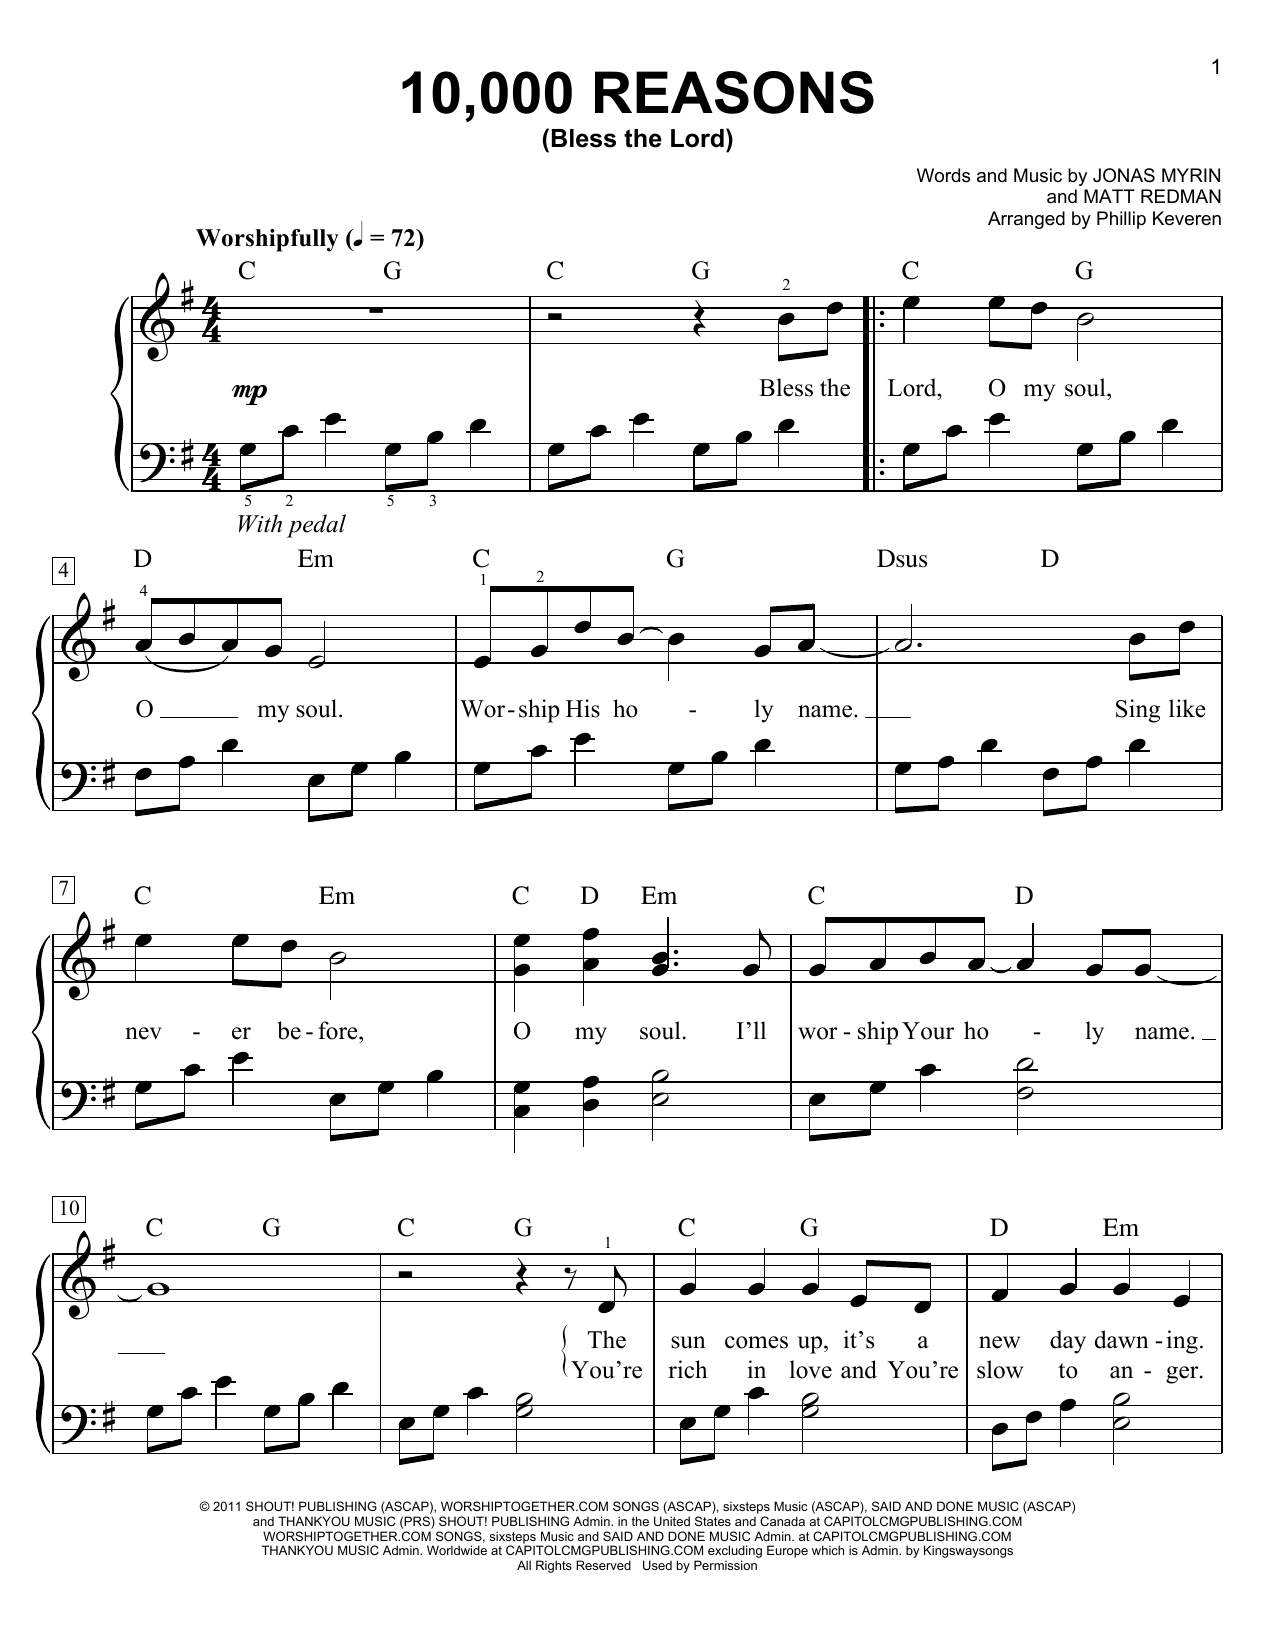 Matt Redman 10,000 Reasons (Bless The Lord) (arr. Phillip Keveren) sheet music notes and chords. Download Printable PDF.